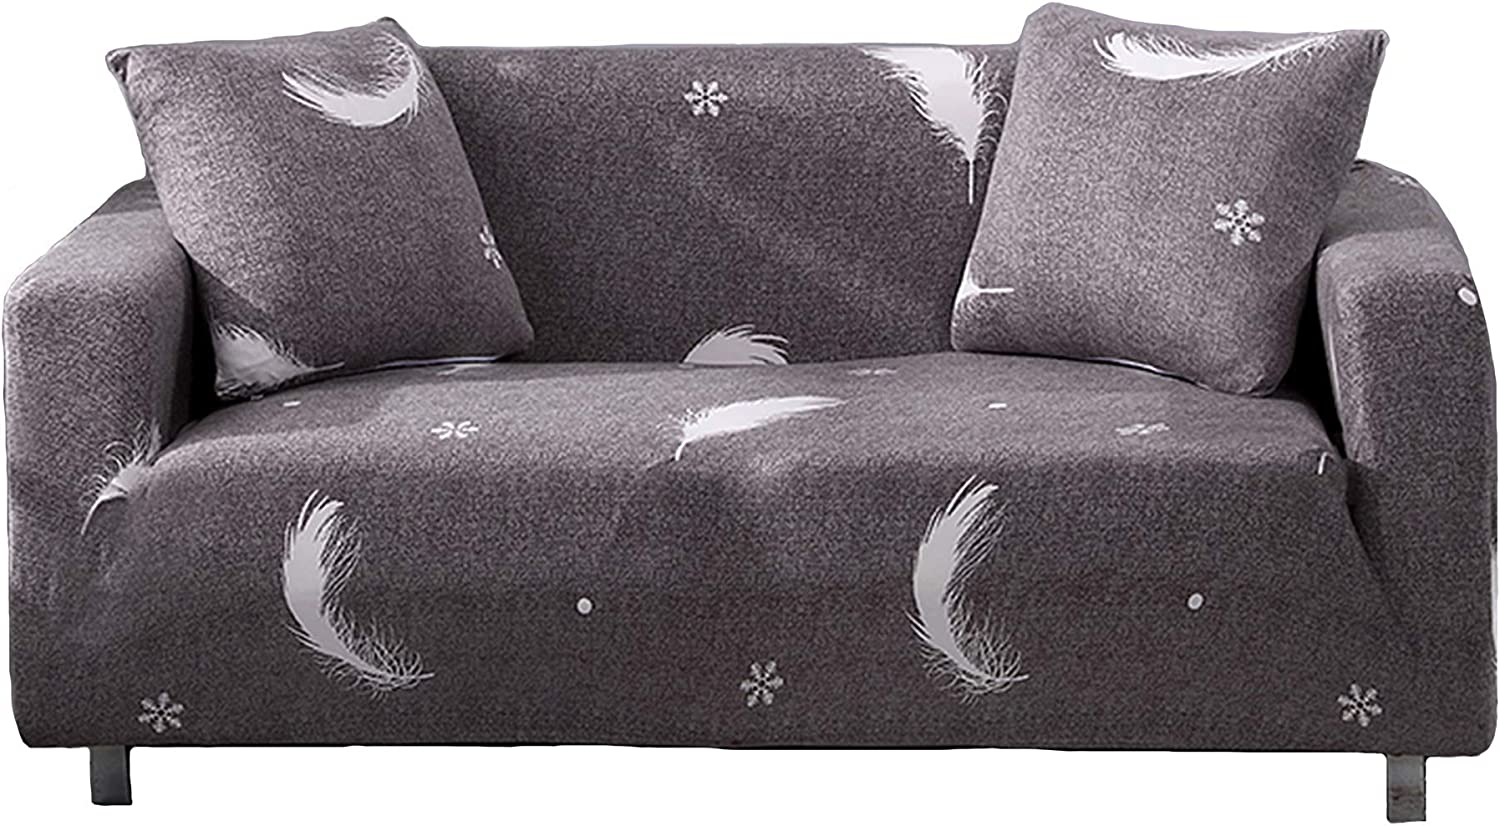 Novelome Soft Fitted Stretch Sofa Slipcover - Stylish Modern Pattern Designs - Furniture Couch Protector Include Pillow Cases – All Seasons Fall Winter Spring Summer (Feather Three Seaters)